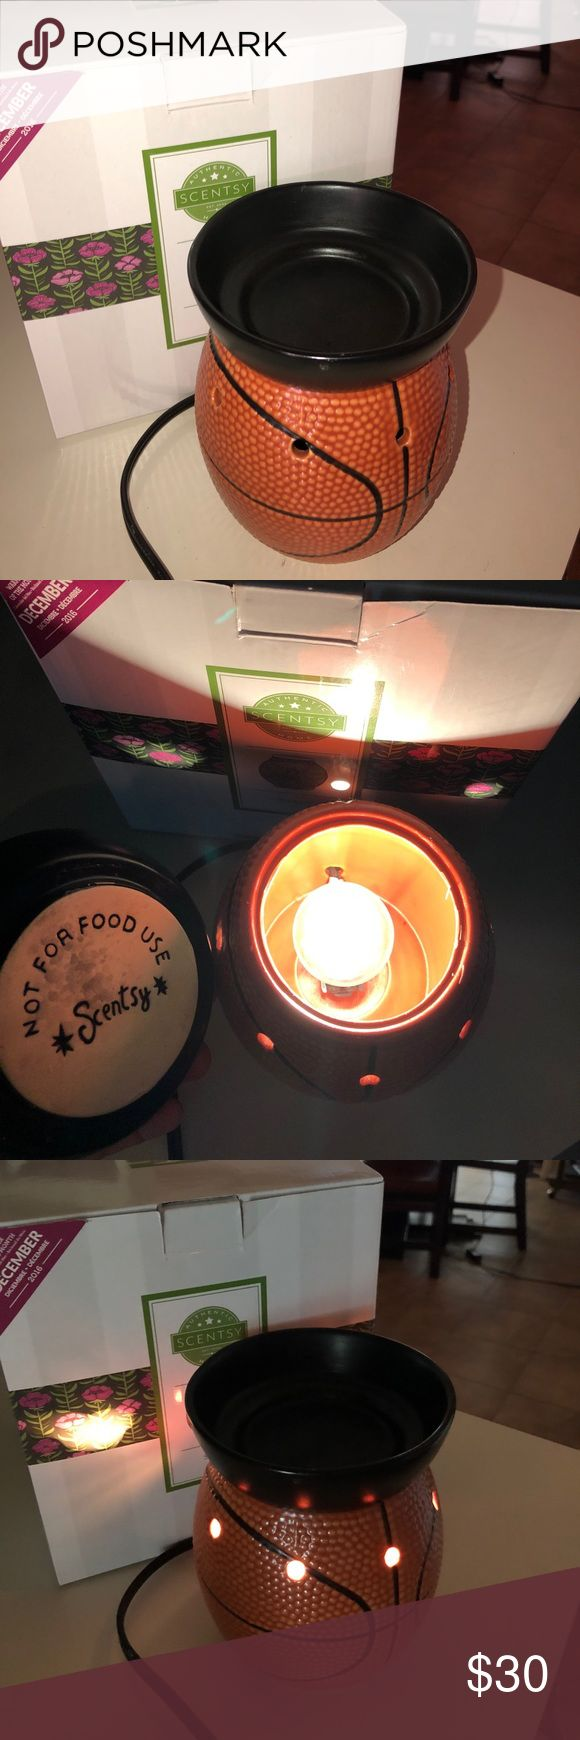 LIKE NEW BASKETBALL SCENTSY Cute scentsy great for a child's room, lightly used, perfect condition! scentsys are the best!! scentsy Other